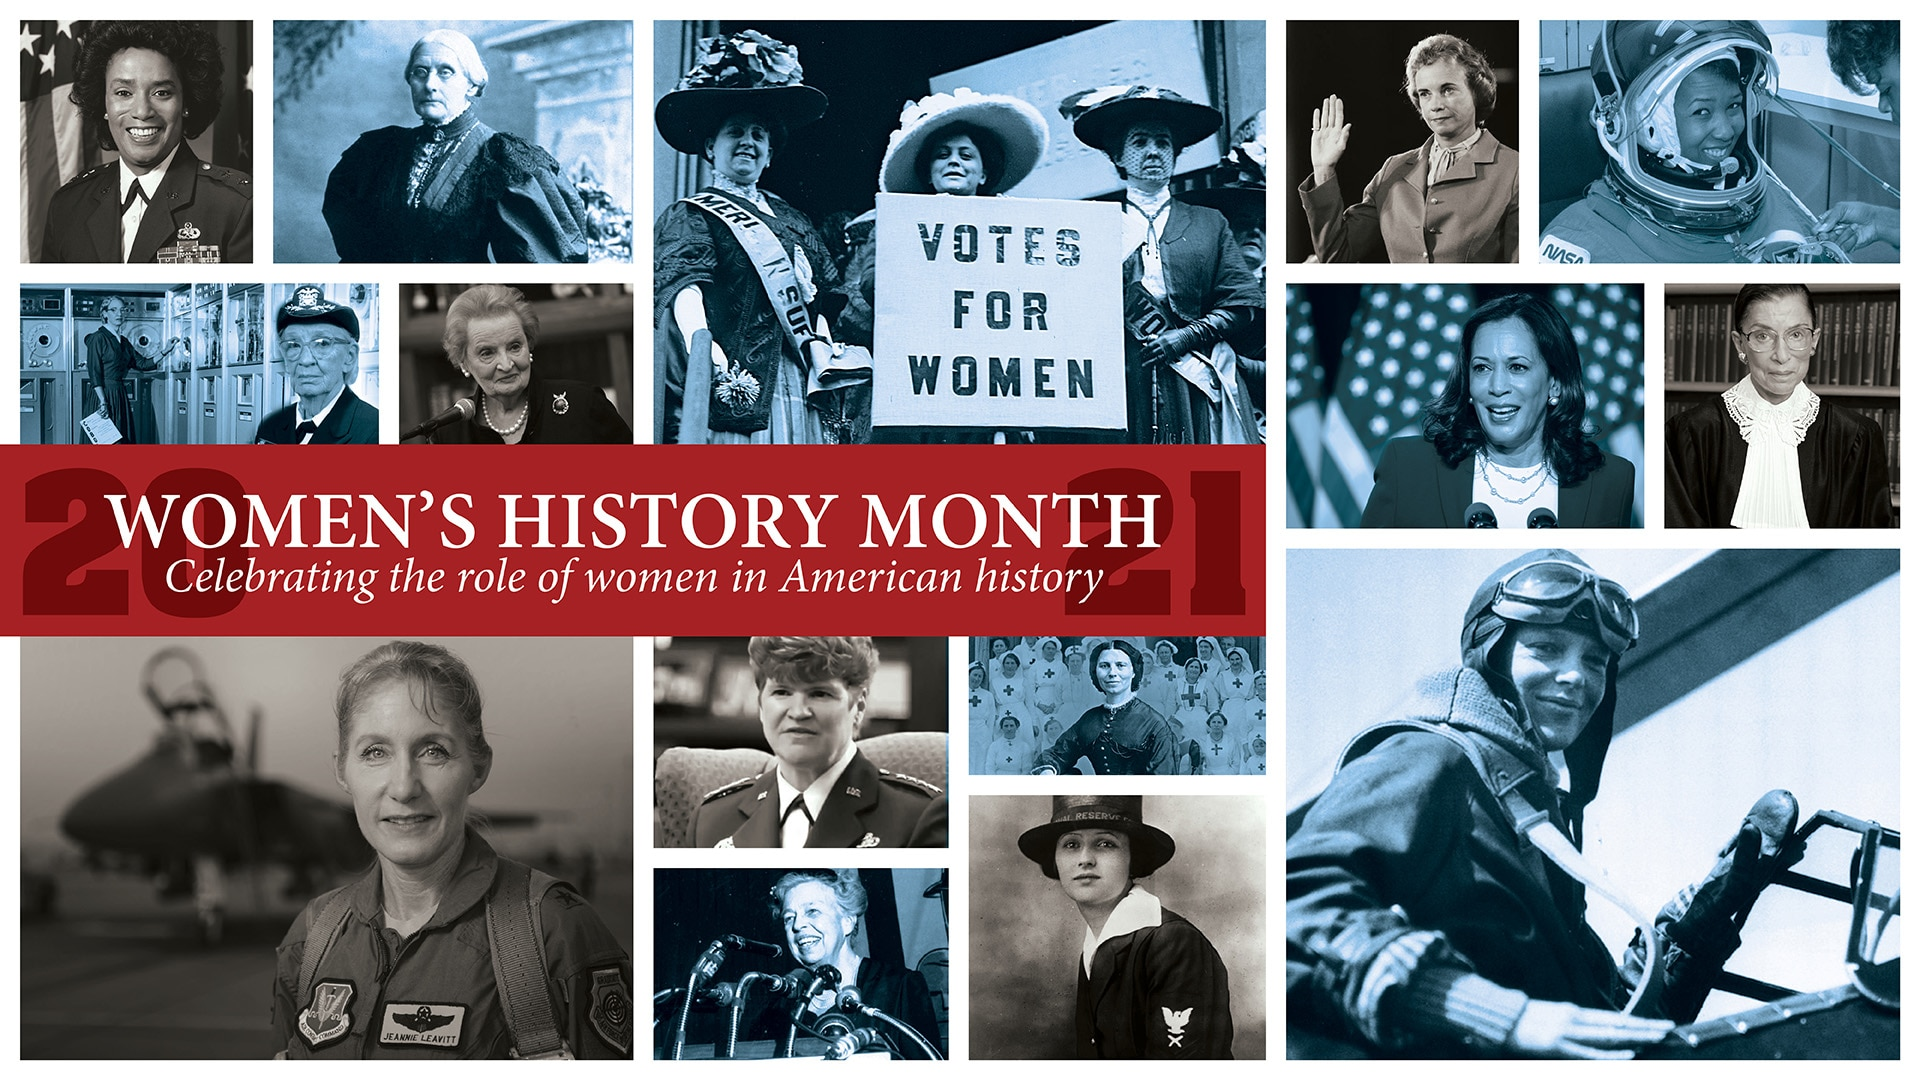 A group of small photos recognizing great women in history.